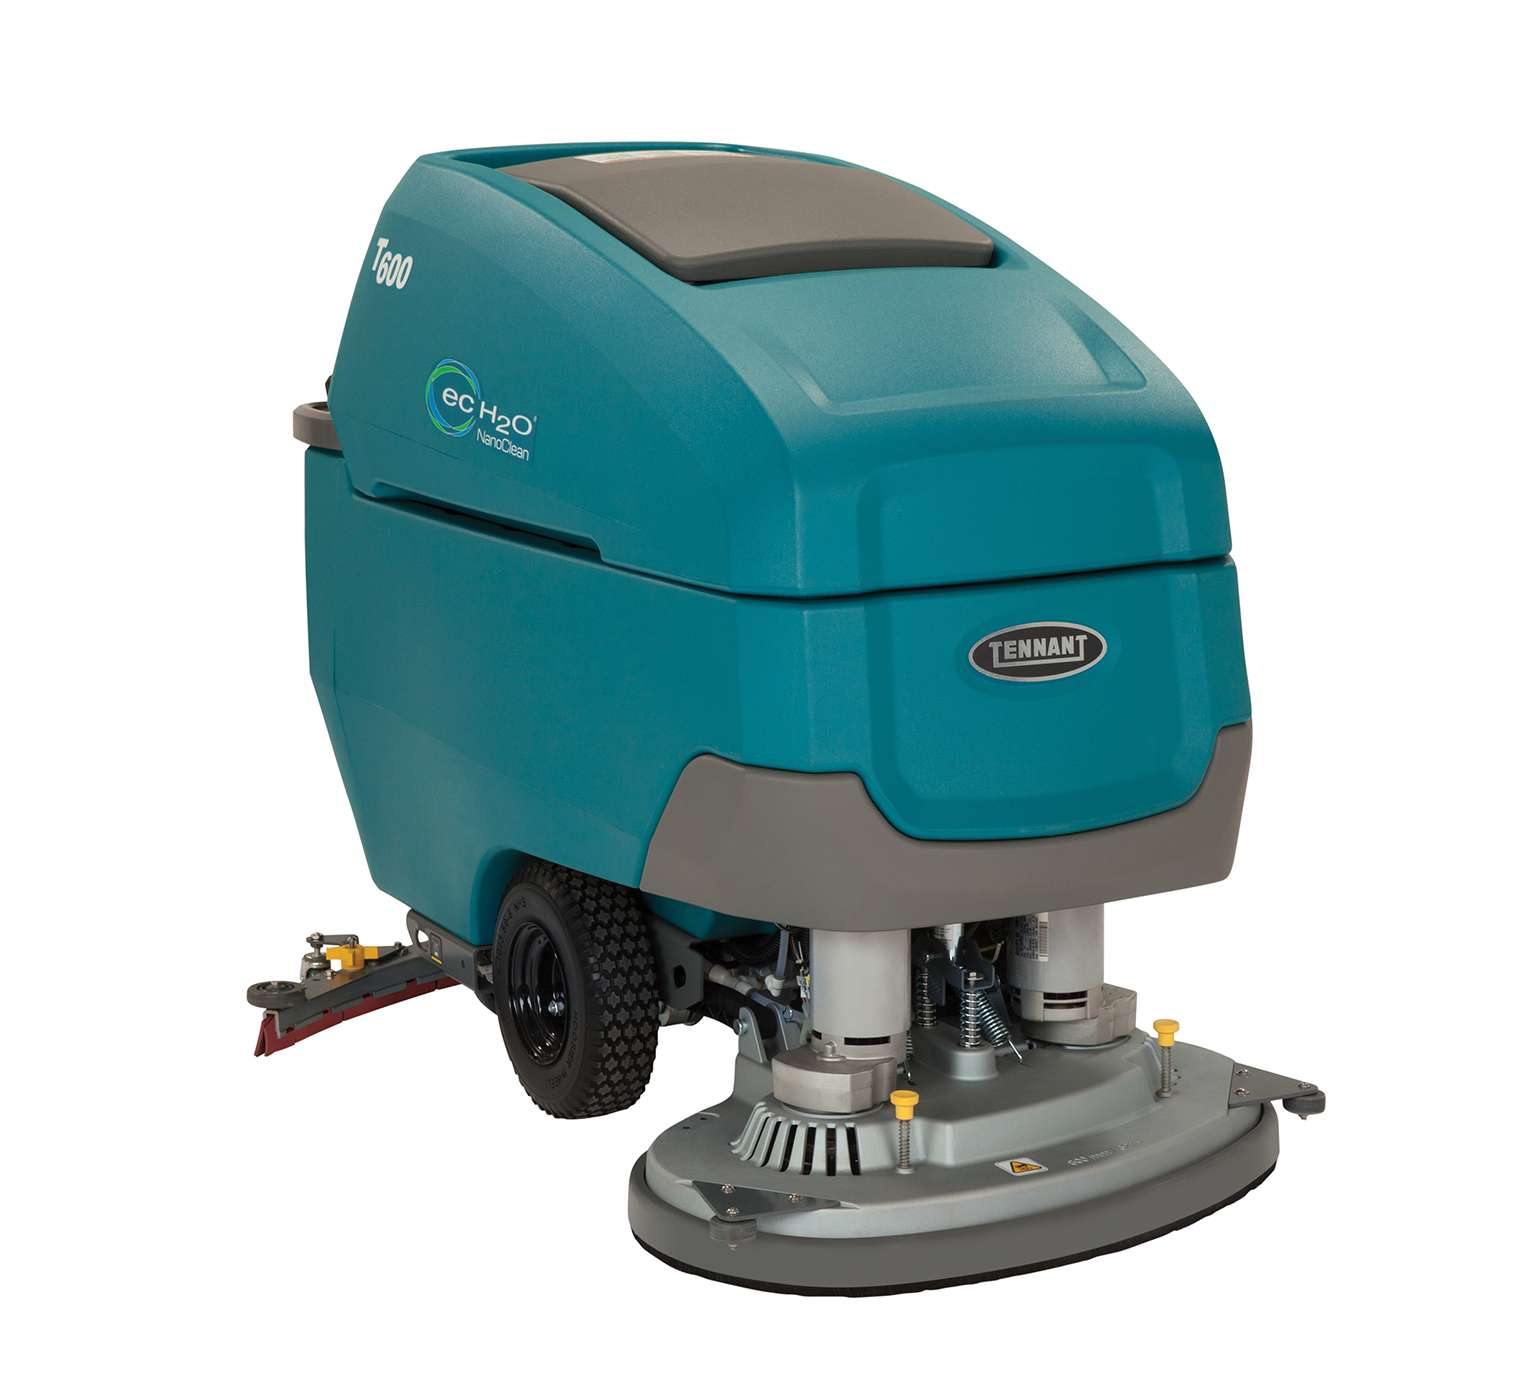 Tennant T600 Industrial Scrubber Powervac Cleaning